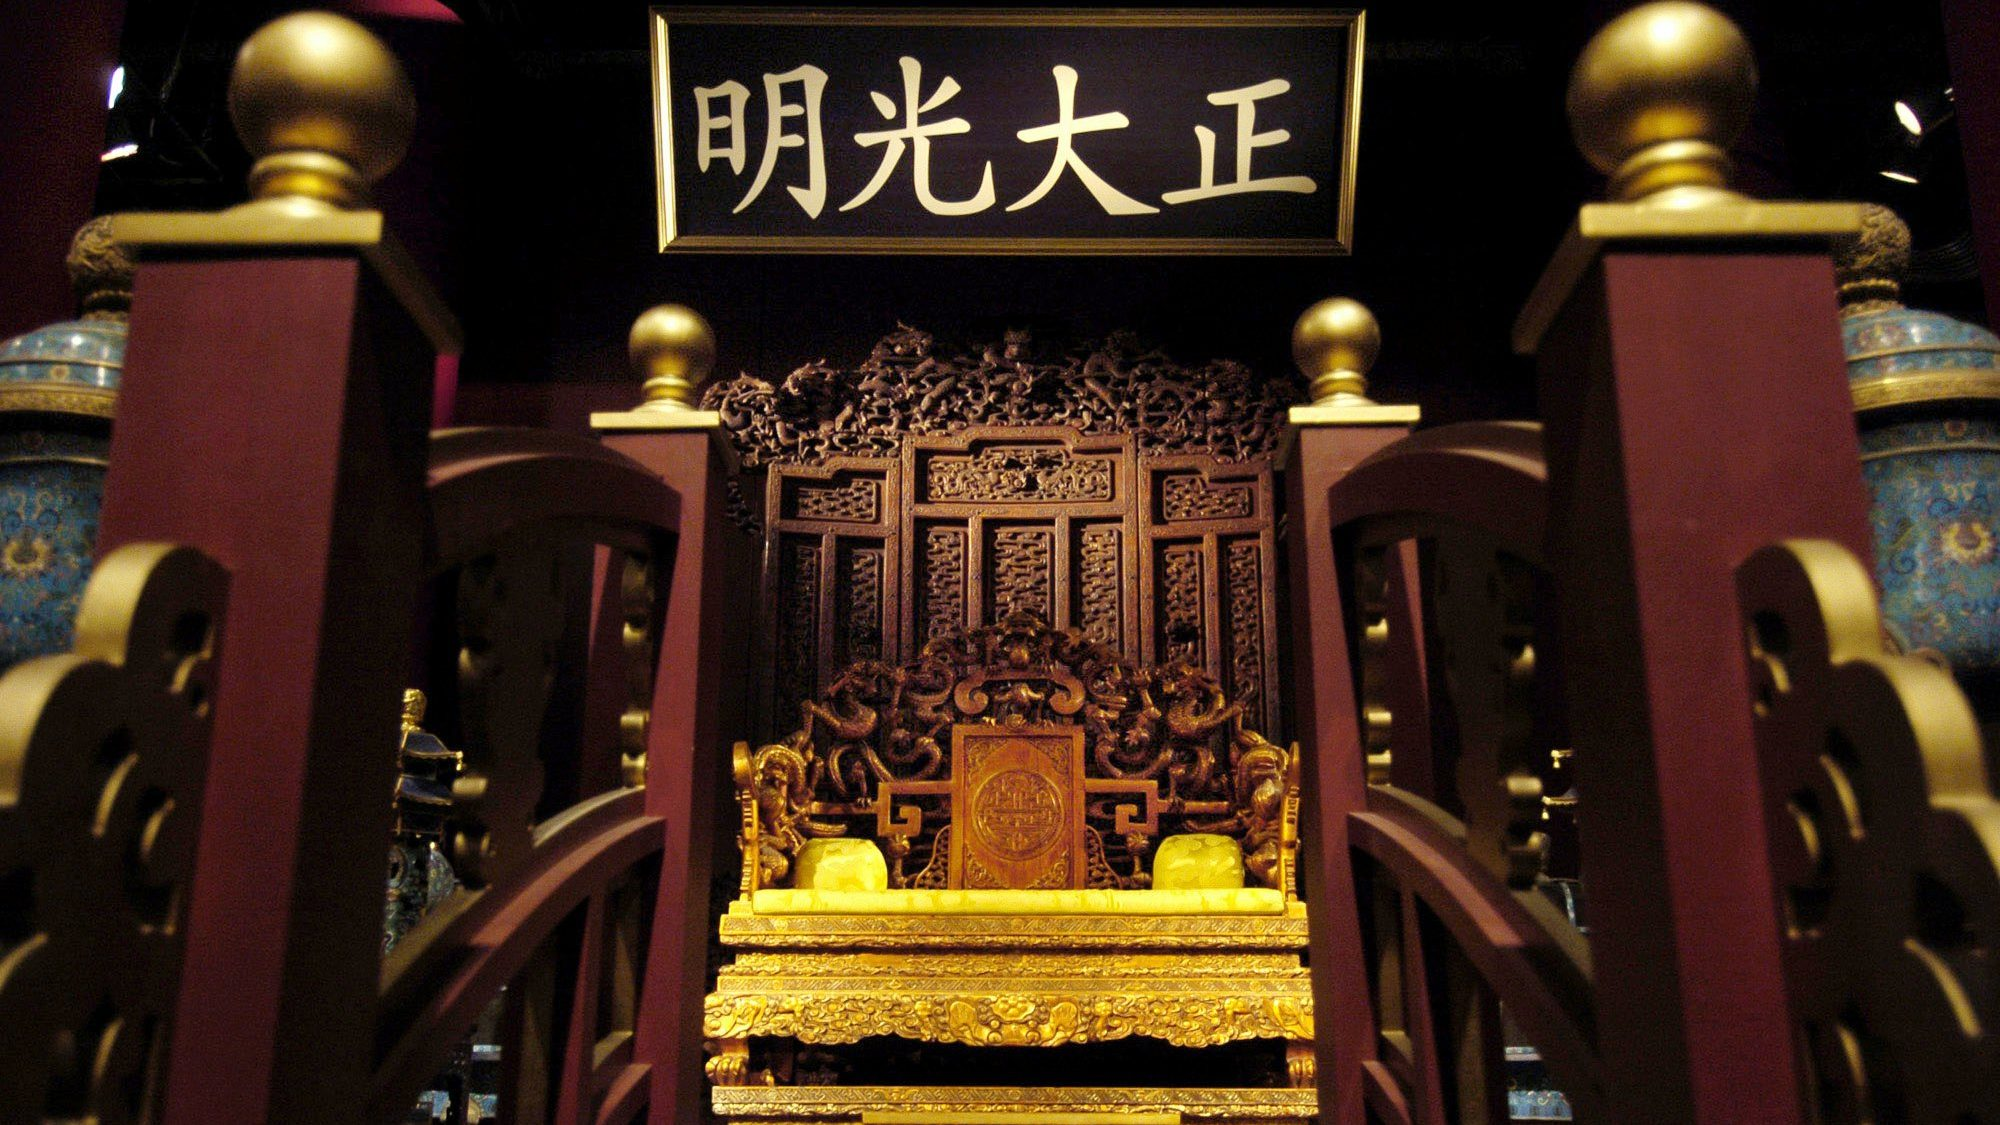 """A recreation of Chinese Emperor Qianlong's throne room sits ready for visitors as part of a new exhibit Wednesday, March 10, 2004 at the Field Museum in Chicago.  """"Splendors of China's Forbidden City: The Glorious Reign of Emperor Qianlong"""" explores China through nearly 400 artifacts, many never before seen in the United States, all connected to the man who ruled the country from 1736 to 1795. The exhibition runs through Sept. 12, 2004."""